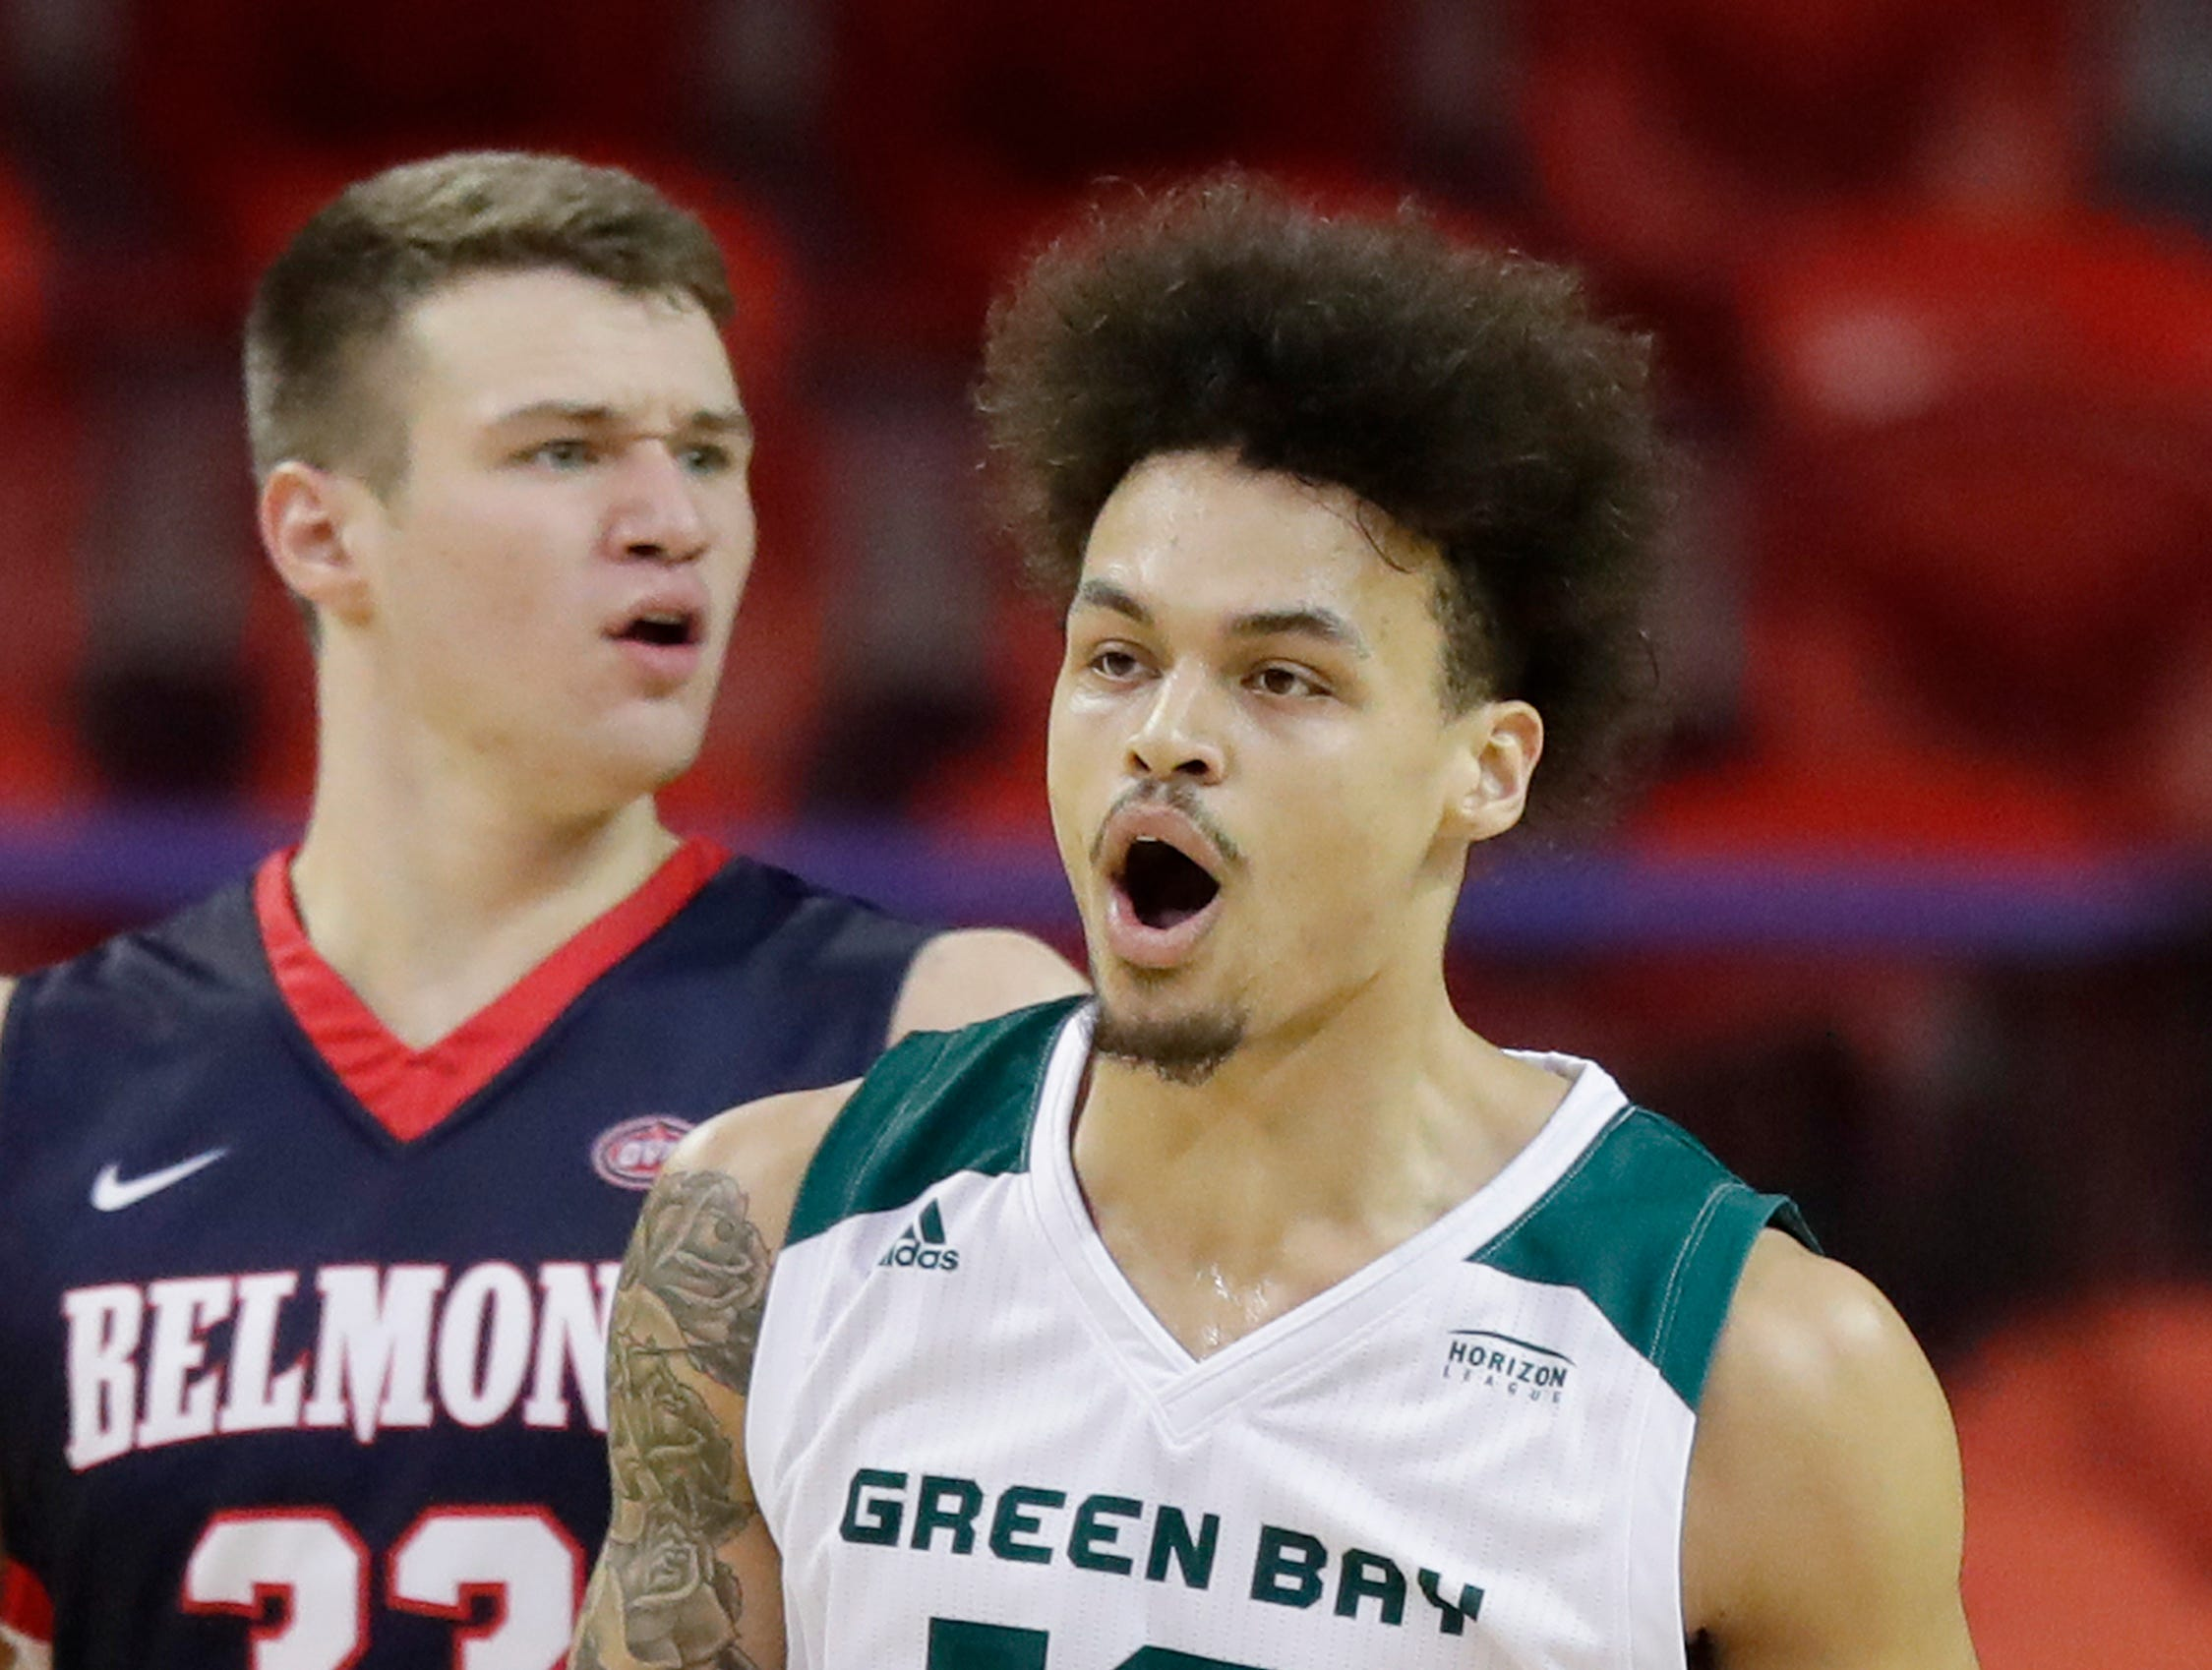 Green Bay Phoenix guard Trevian Bell (13) reacts after drawing a foul on Belmont Bruins center Nick Muszynski (33) in a NCAA basketball game at the Resch Center on Saturday, December 1, 2018 in Ashwaubenon, Wis.